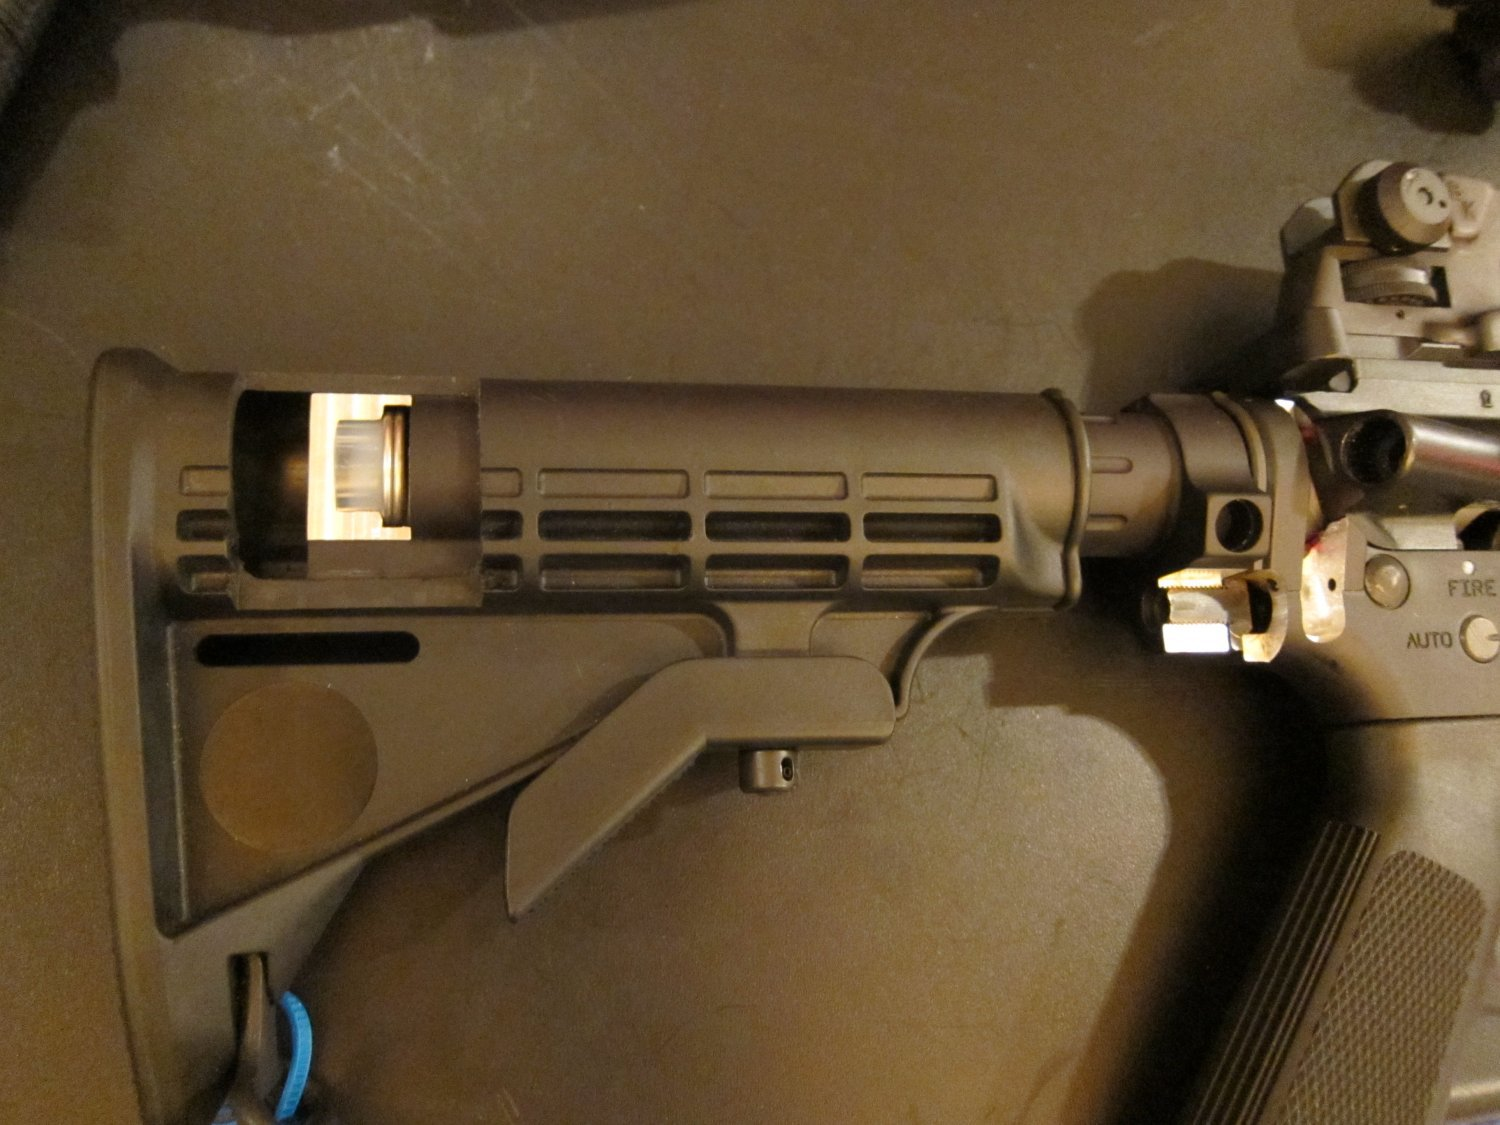 shot show 2010 primary weapons systems pws enhanced buffer tube milspec 2 <!  :en  >Primary Weapons Systems Introduces PWS Enhanced Buffer Tube, MilSpec for Tactical AR Carbines and SBRs/Subcarbines at SHOT Show 2010<!  :  >